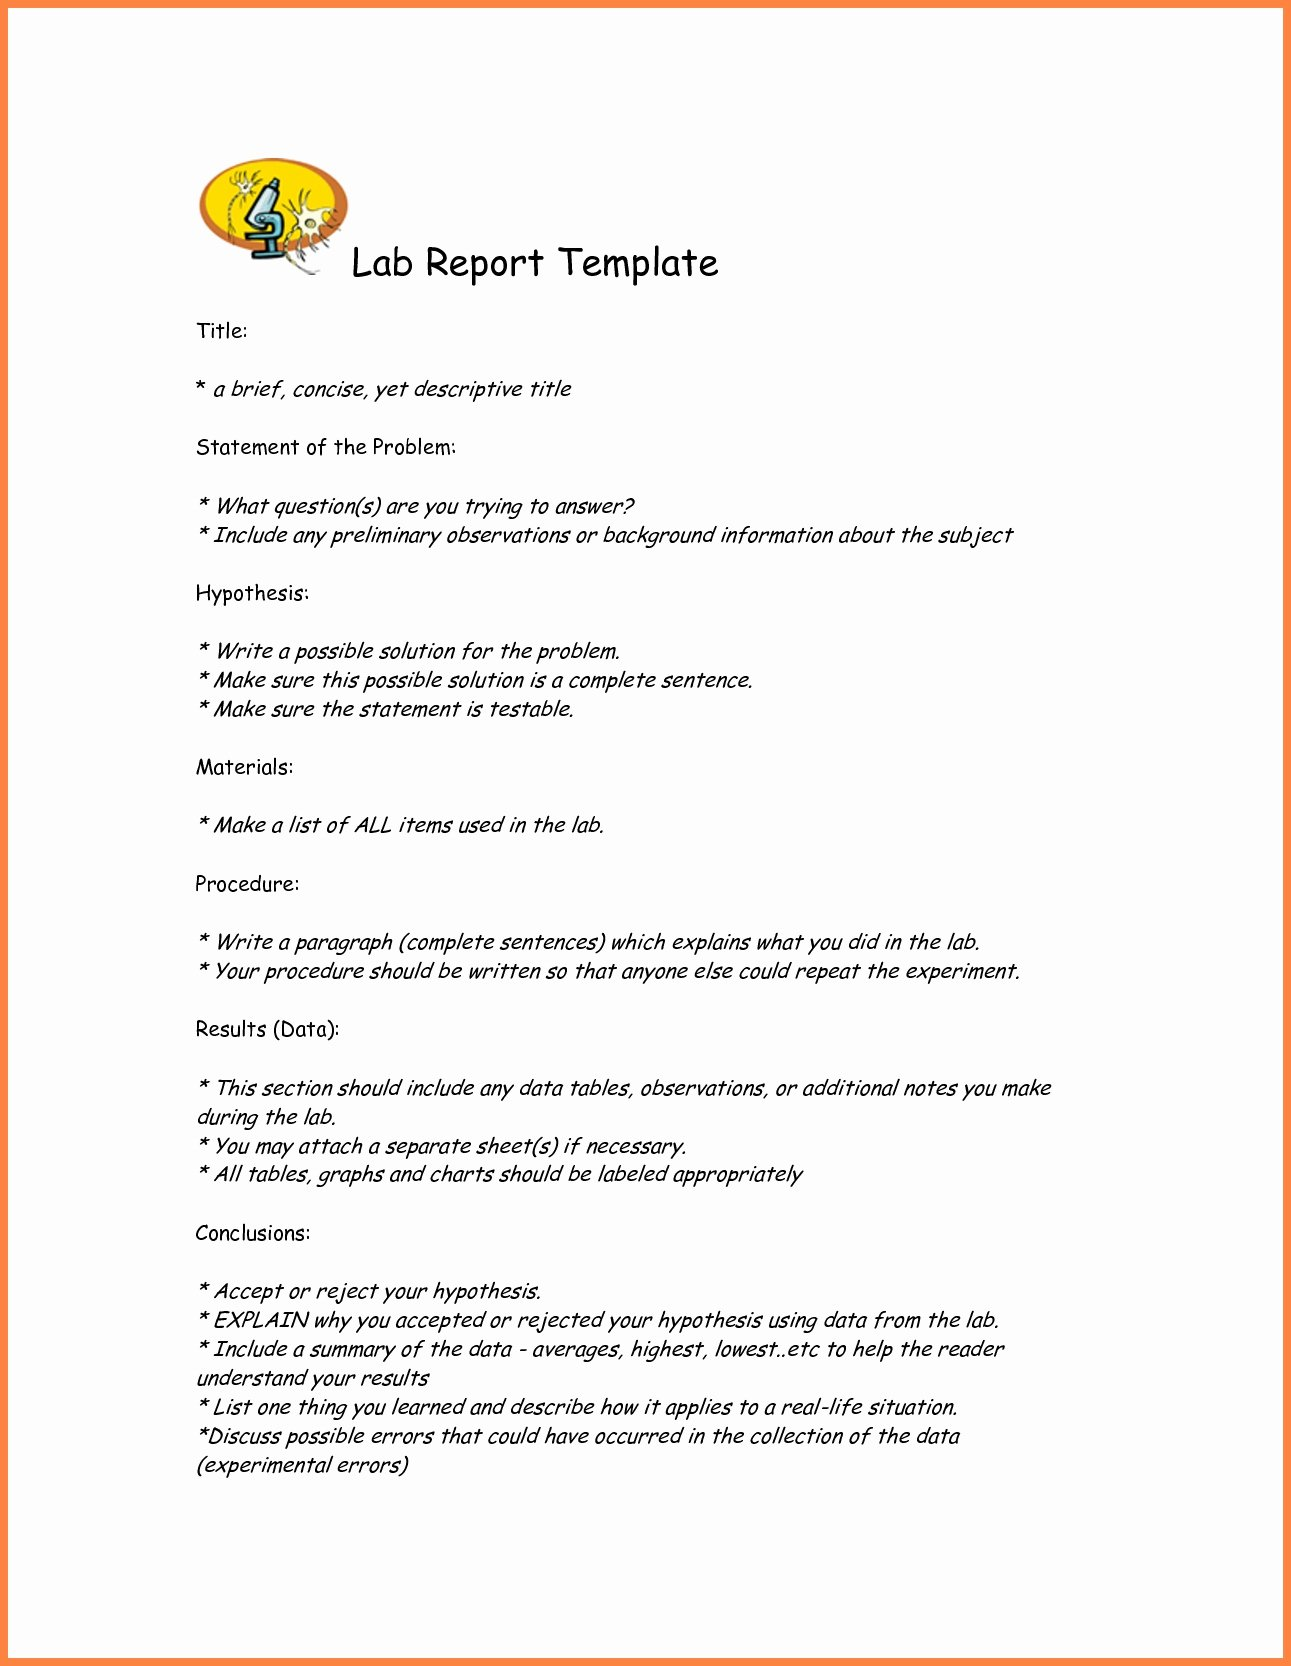 Lab Report Template Word Best Of Lab Report Template